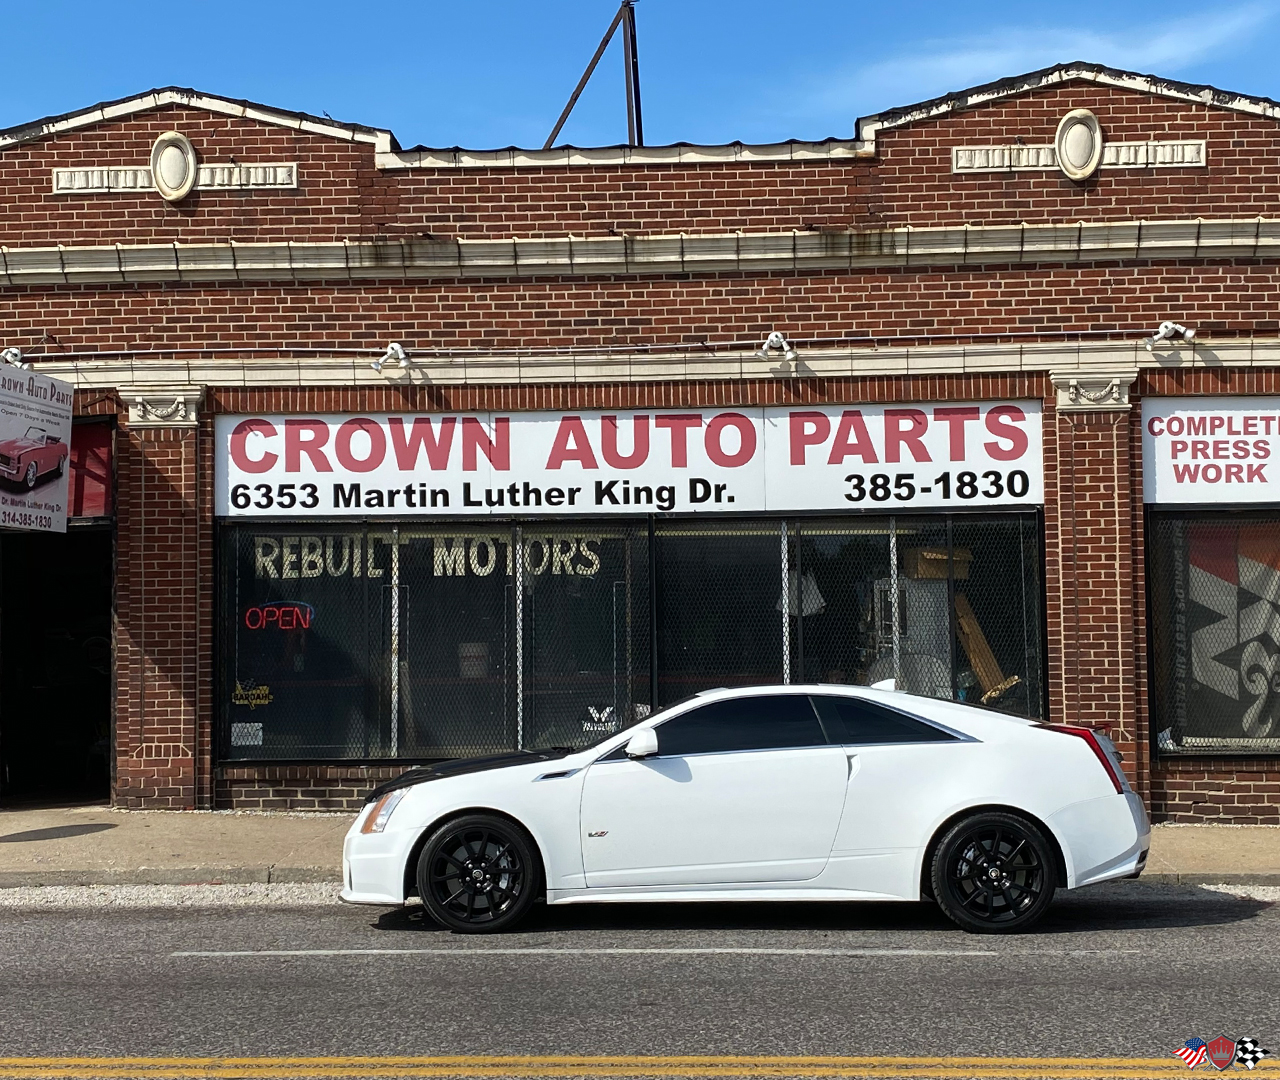 2011 Cadillac CTS-V Crown Auto Parts Performance upgraded